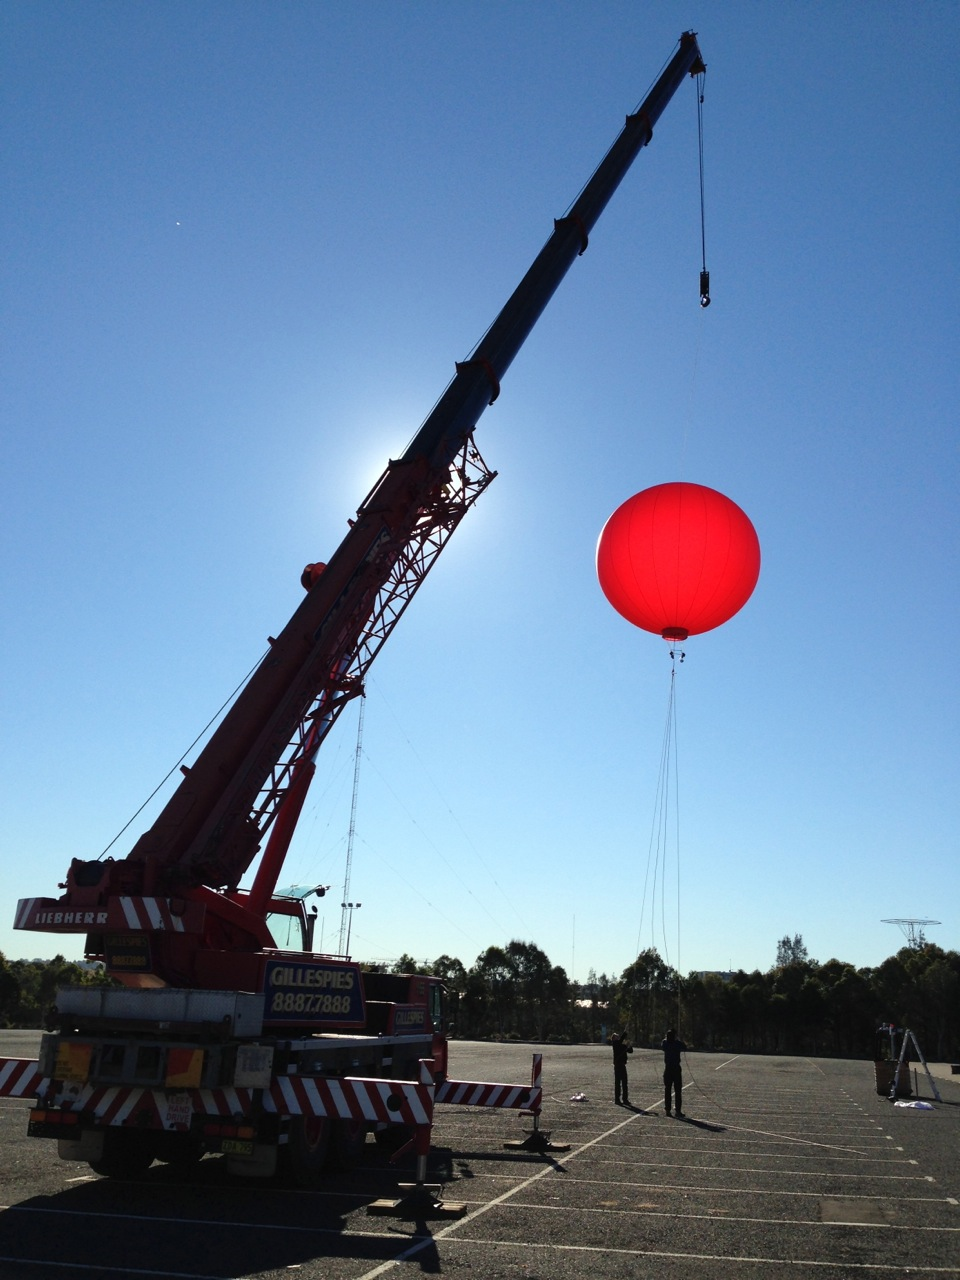 raising balloon up & down using 20m crane